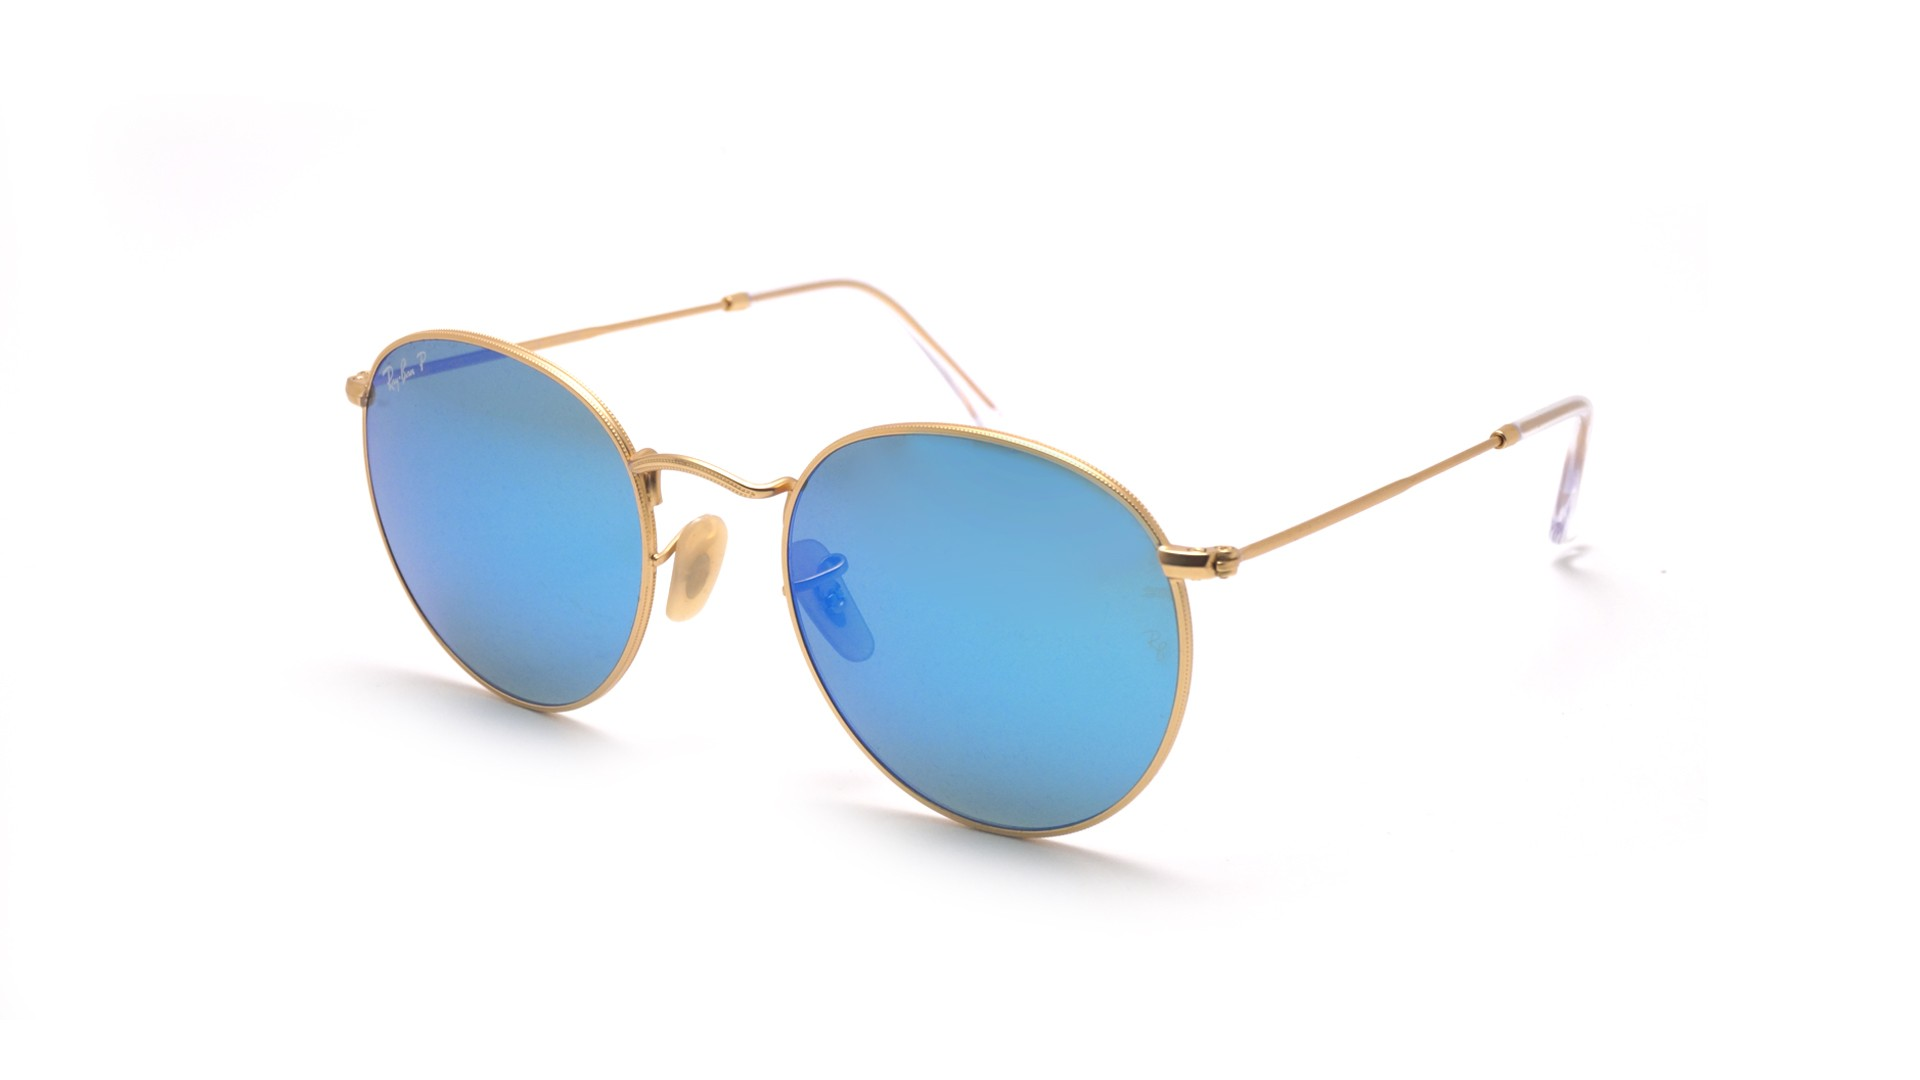 Sunglasses Ray-Ban Round Metal Gold Flash Lenses RB3447 112 4L 50-21 Medium  Polarized Mirror e9a5b2d0a9